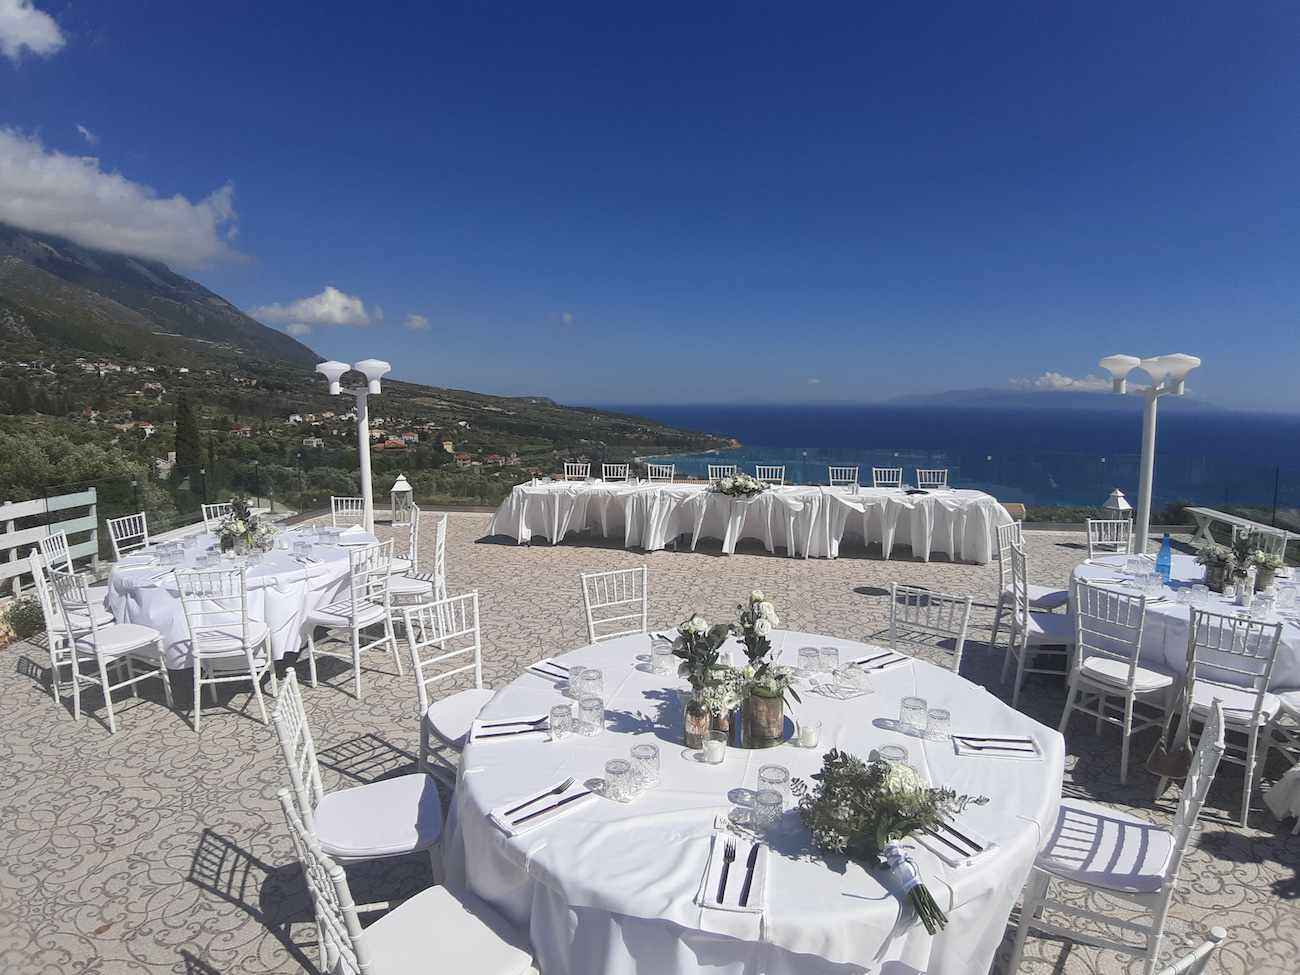 images/kefalonia_weddings/kefalonia_wedding_venues/kefalonia_wedding_planners/reception_venu_kefalonia/kefalonia_wedding_receptions_003.jpg